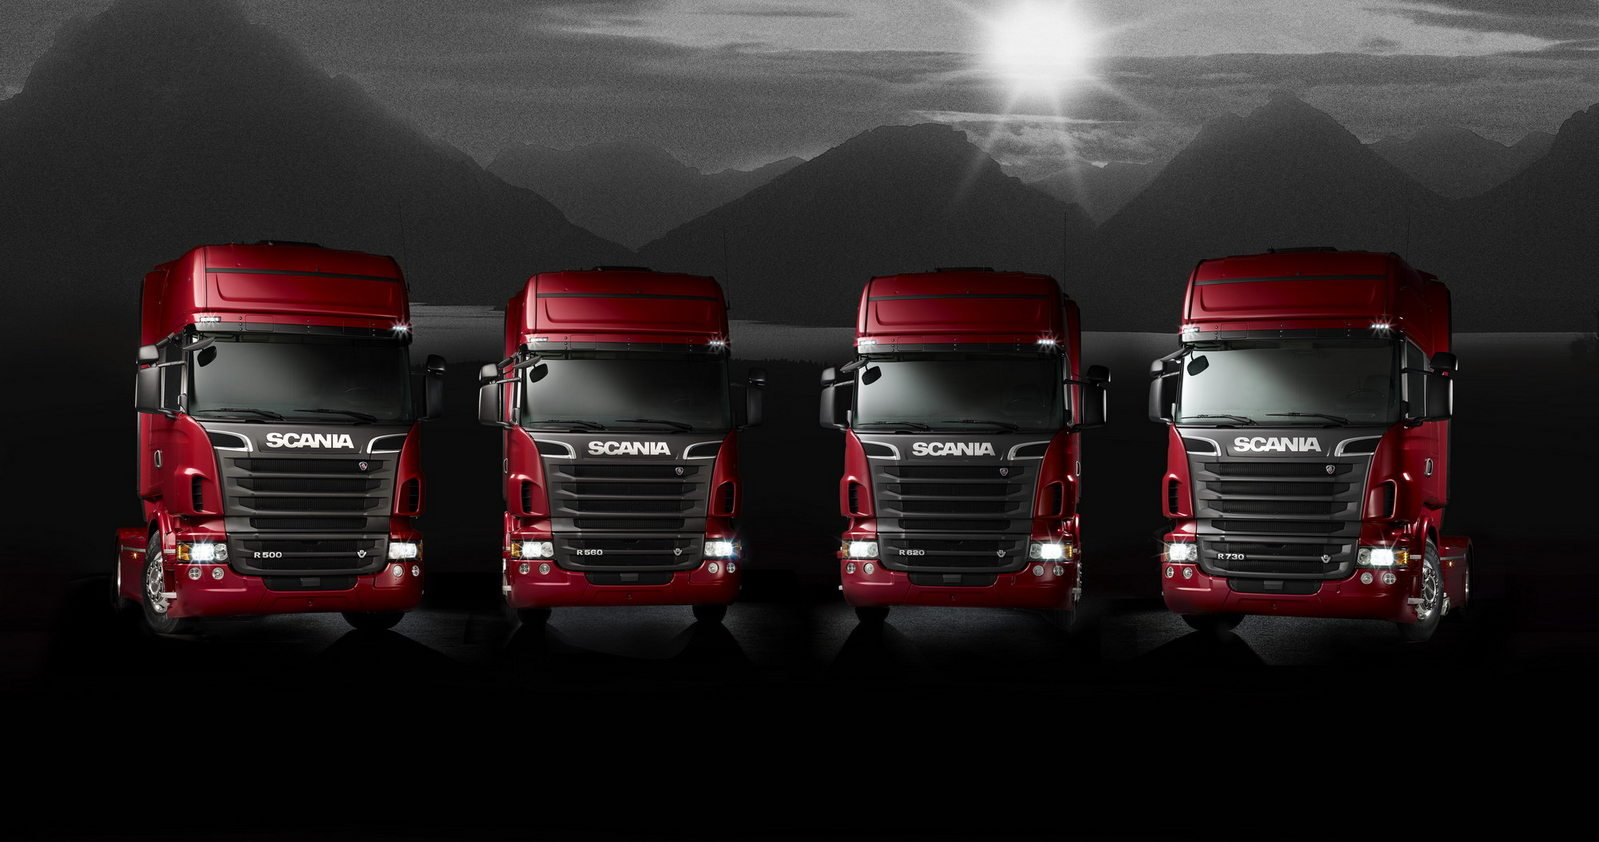 Scania V8 Truck Range Pictures, Photos, Wallpapers. | Top